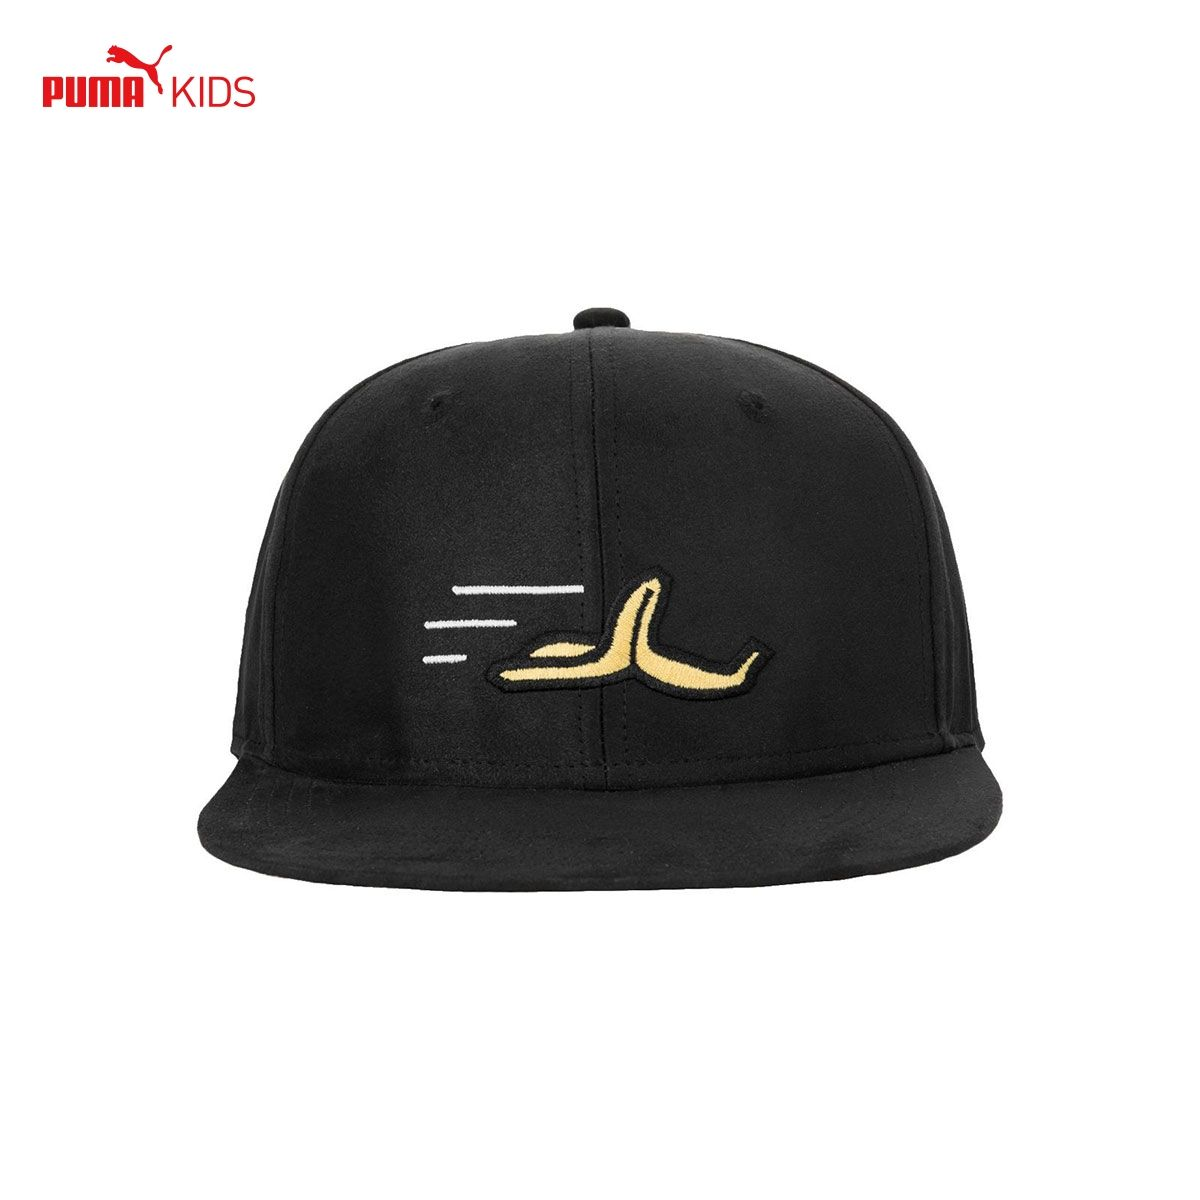 puma Puma children s 2018 New large children s small yellow hat boys and  girls casual hat light fe701e0d8d4